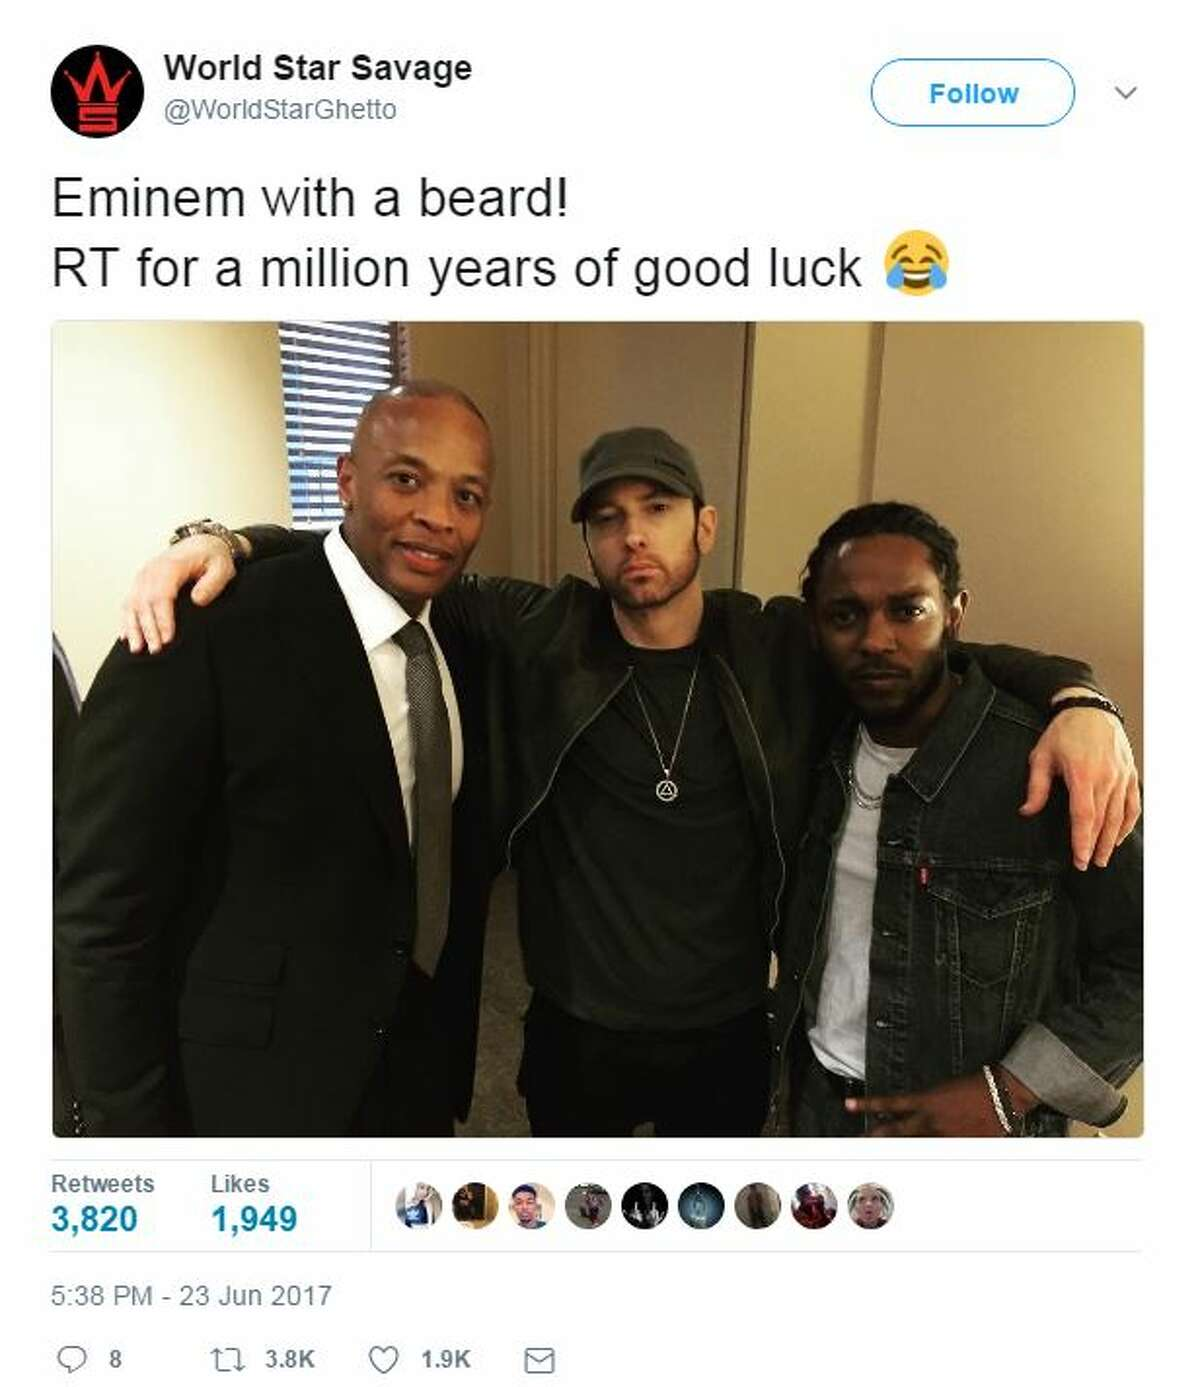 Eminem with a beard! RT for a million years of good luck.